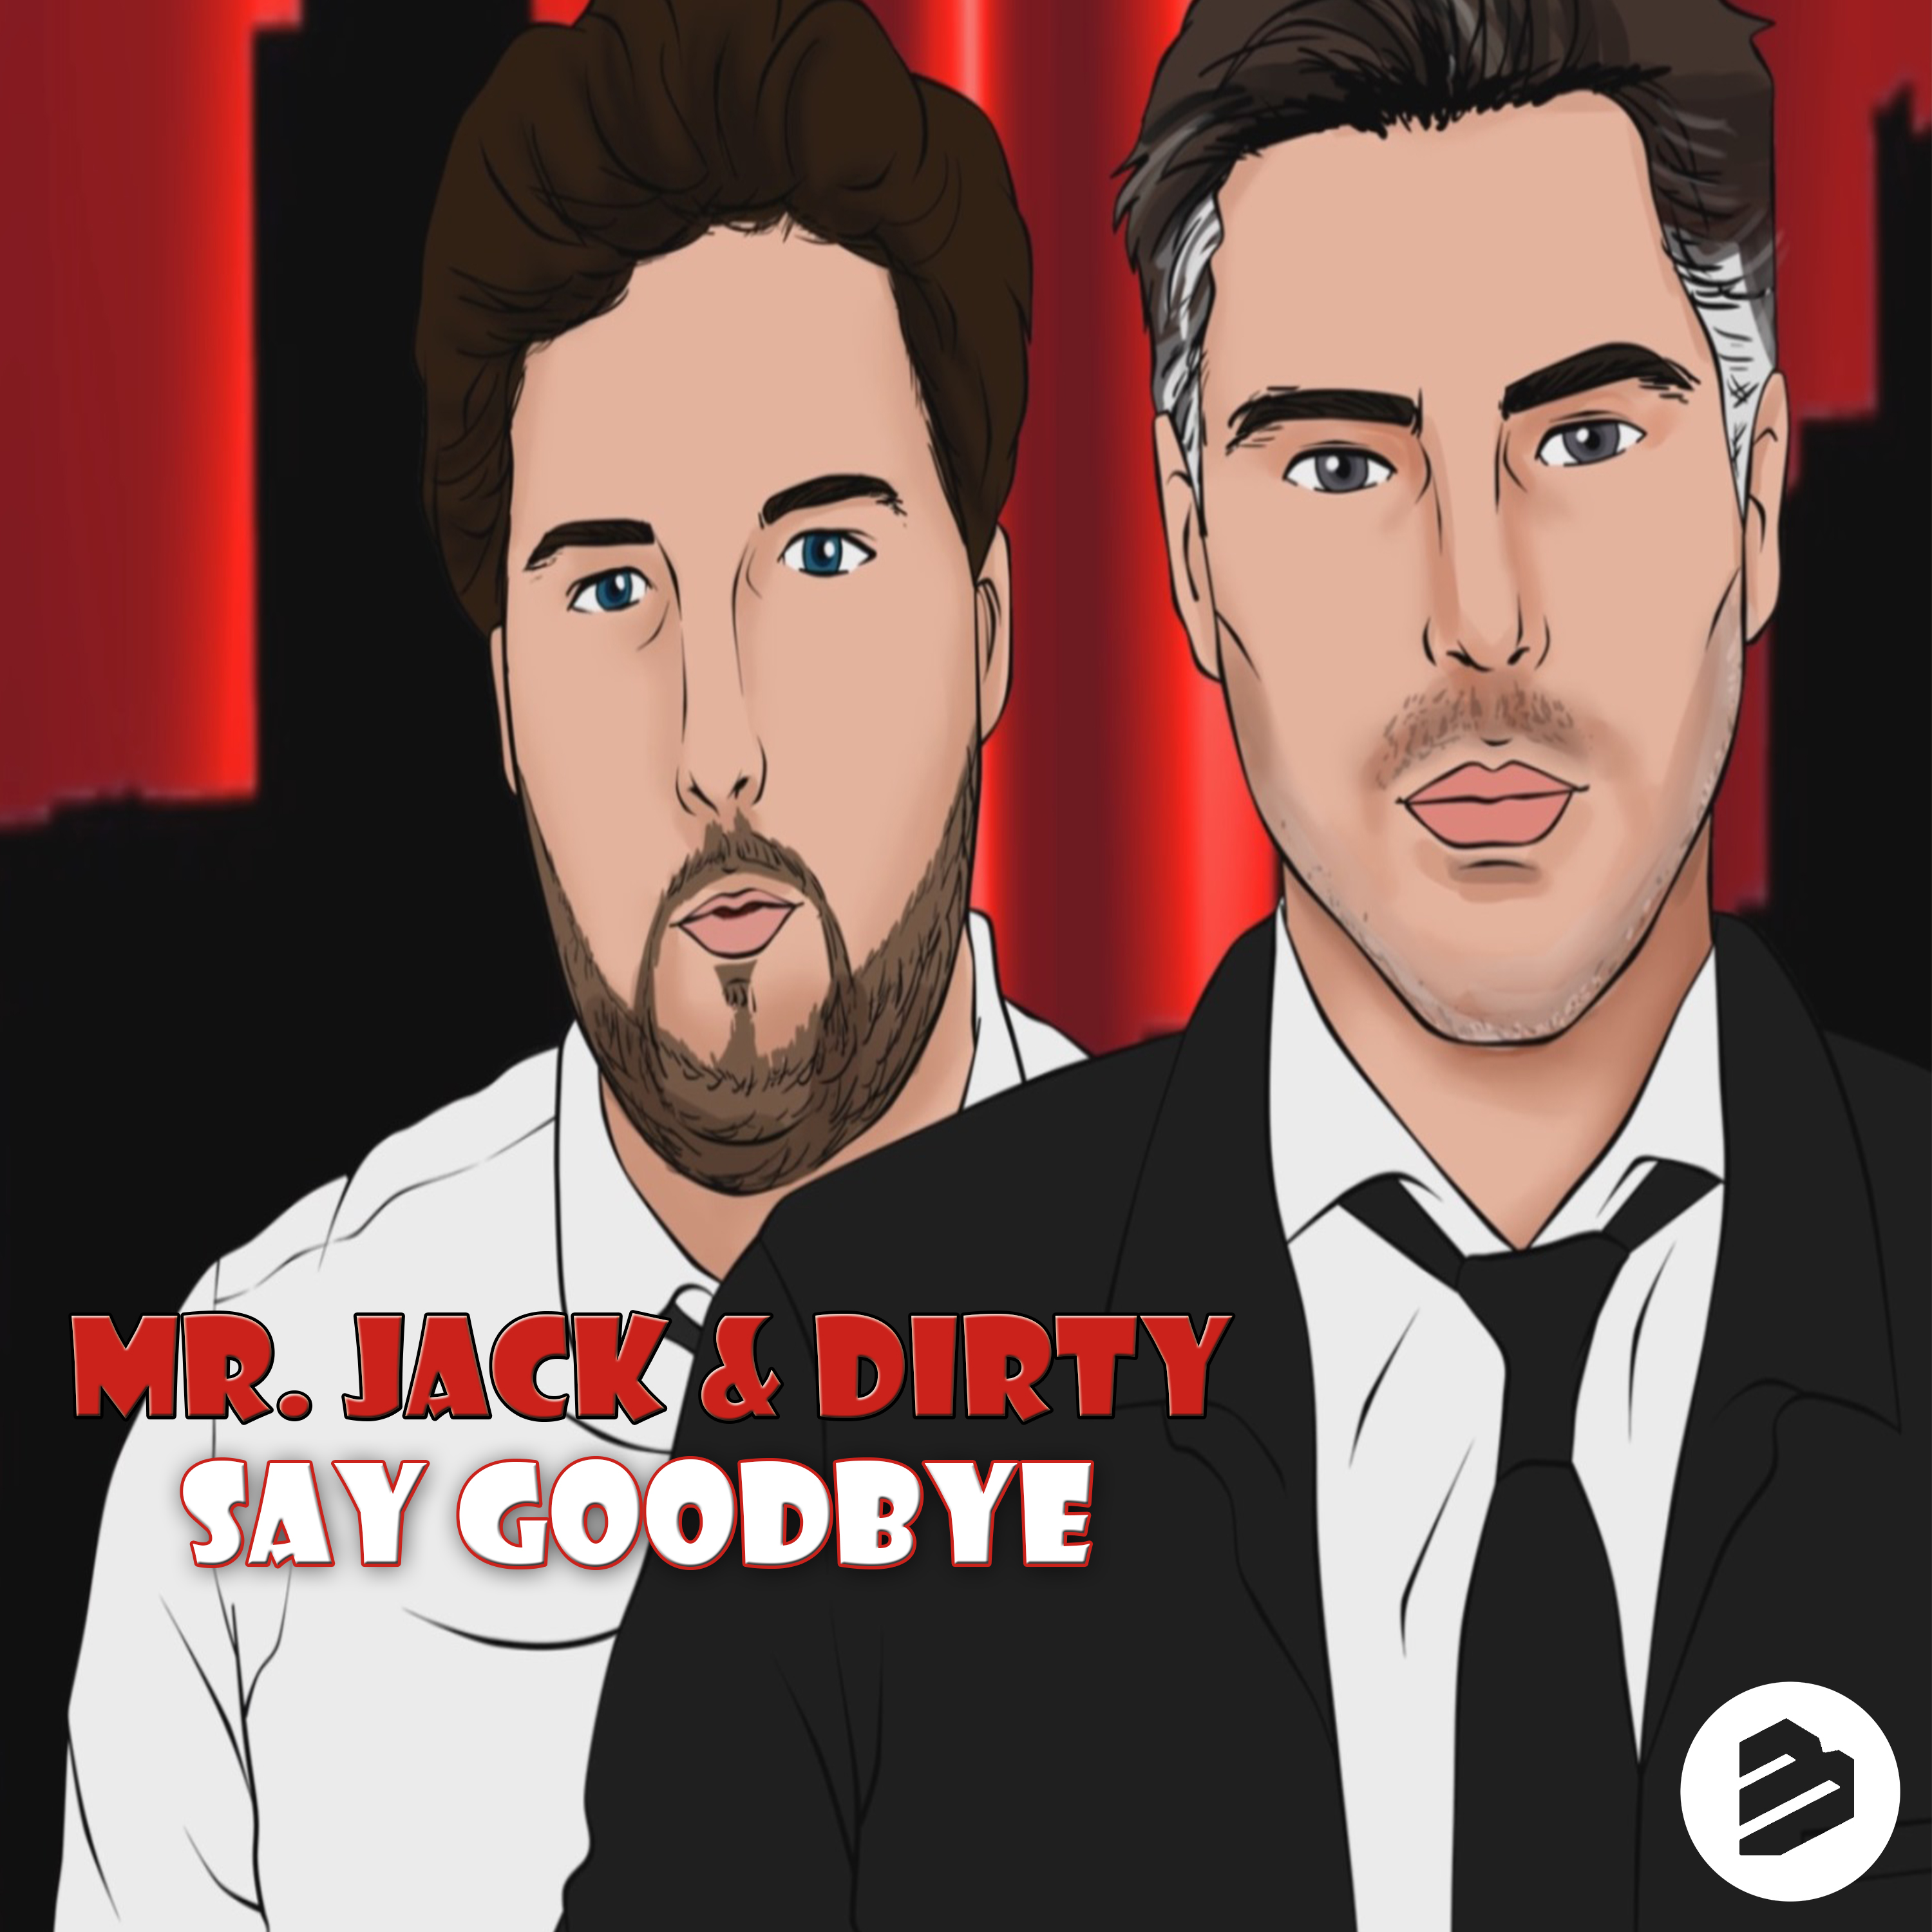 Mr. Jack & Dirty